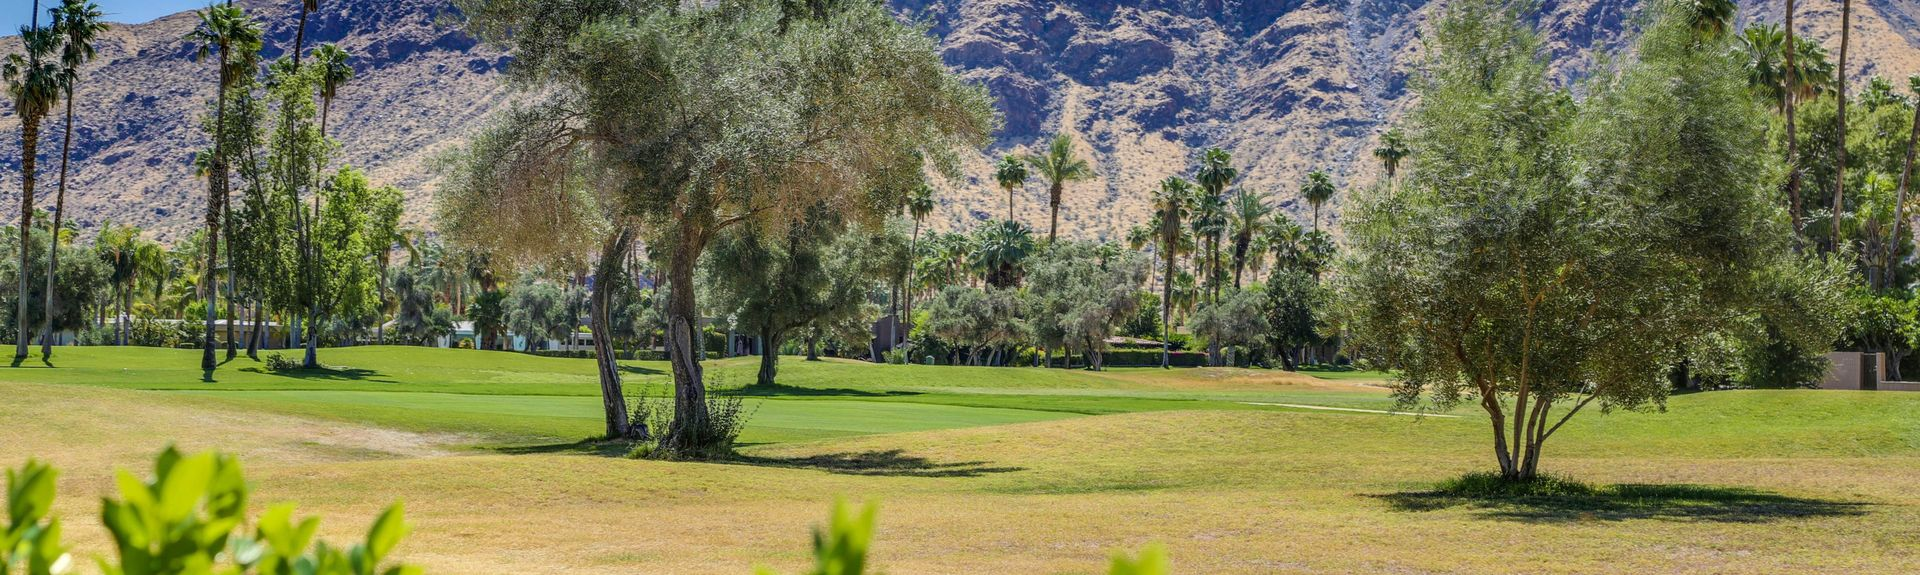 Indian Canyon, Palm Springs, California, United States of America